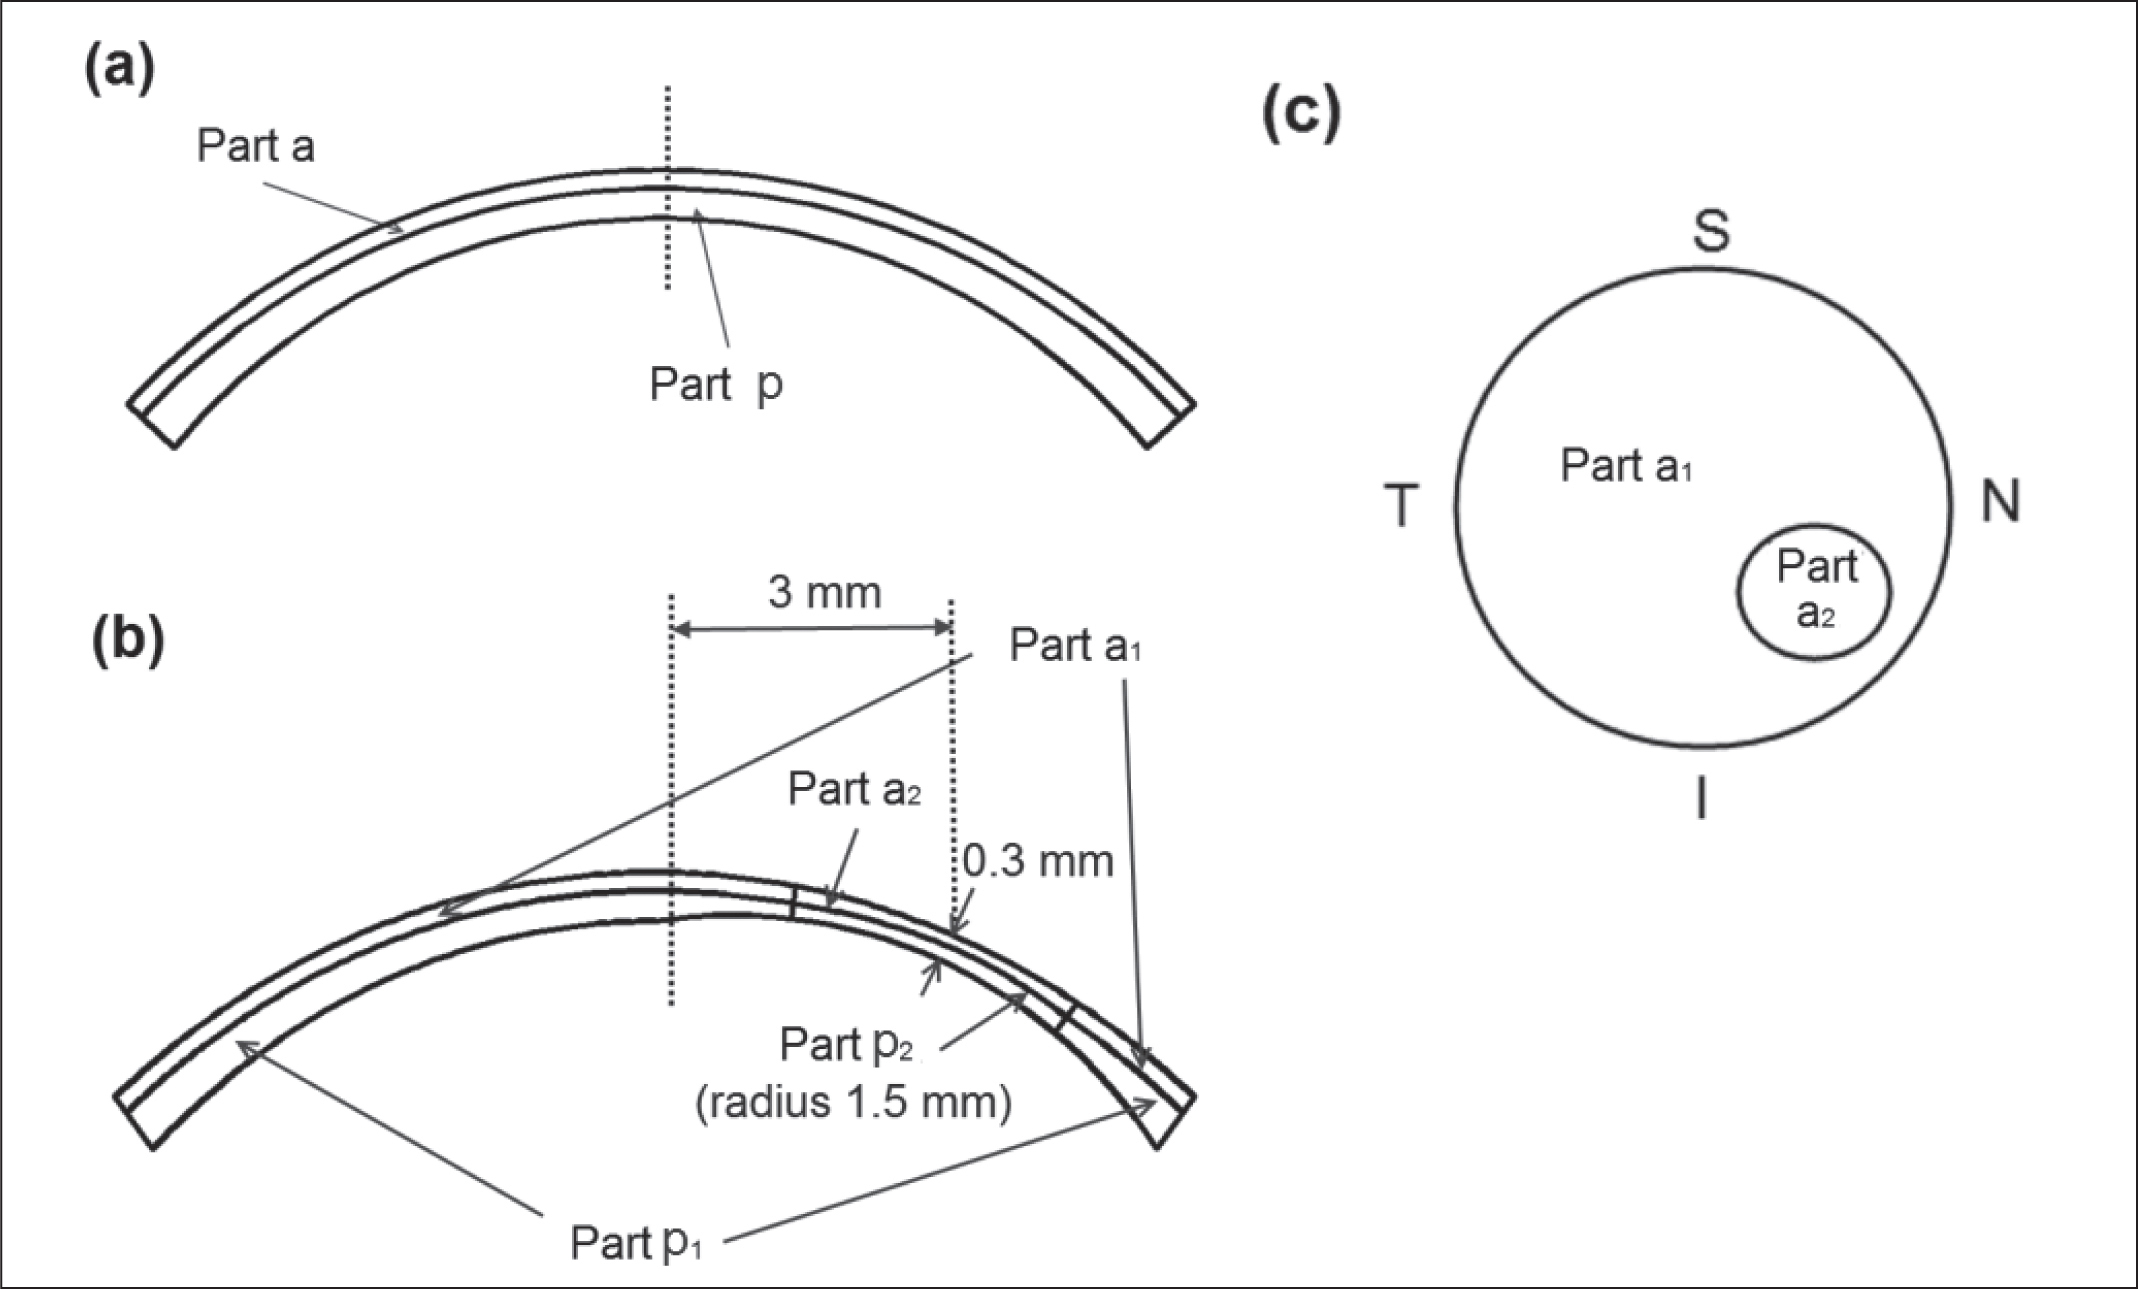 Material distributions for the (A) normal cornea, (B) keratoconic cornea, and (C) keratoconus region (viewed from the top). S = superior; I = inferior; N = nasal; T = temporal; a = anterior; p = posterior.